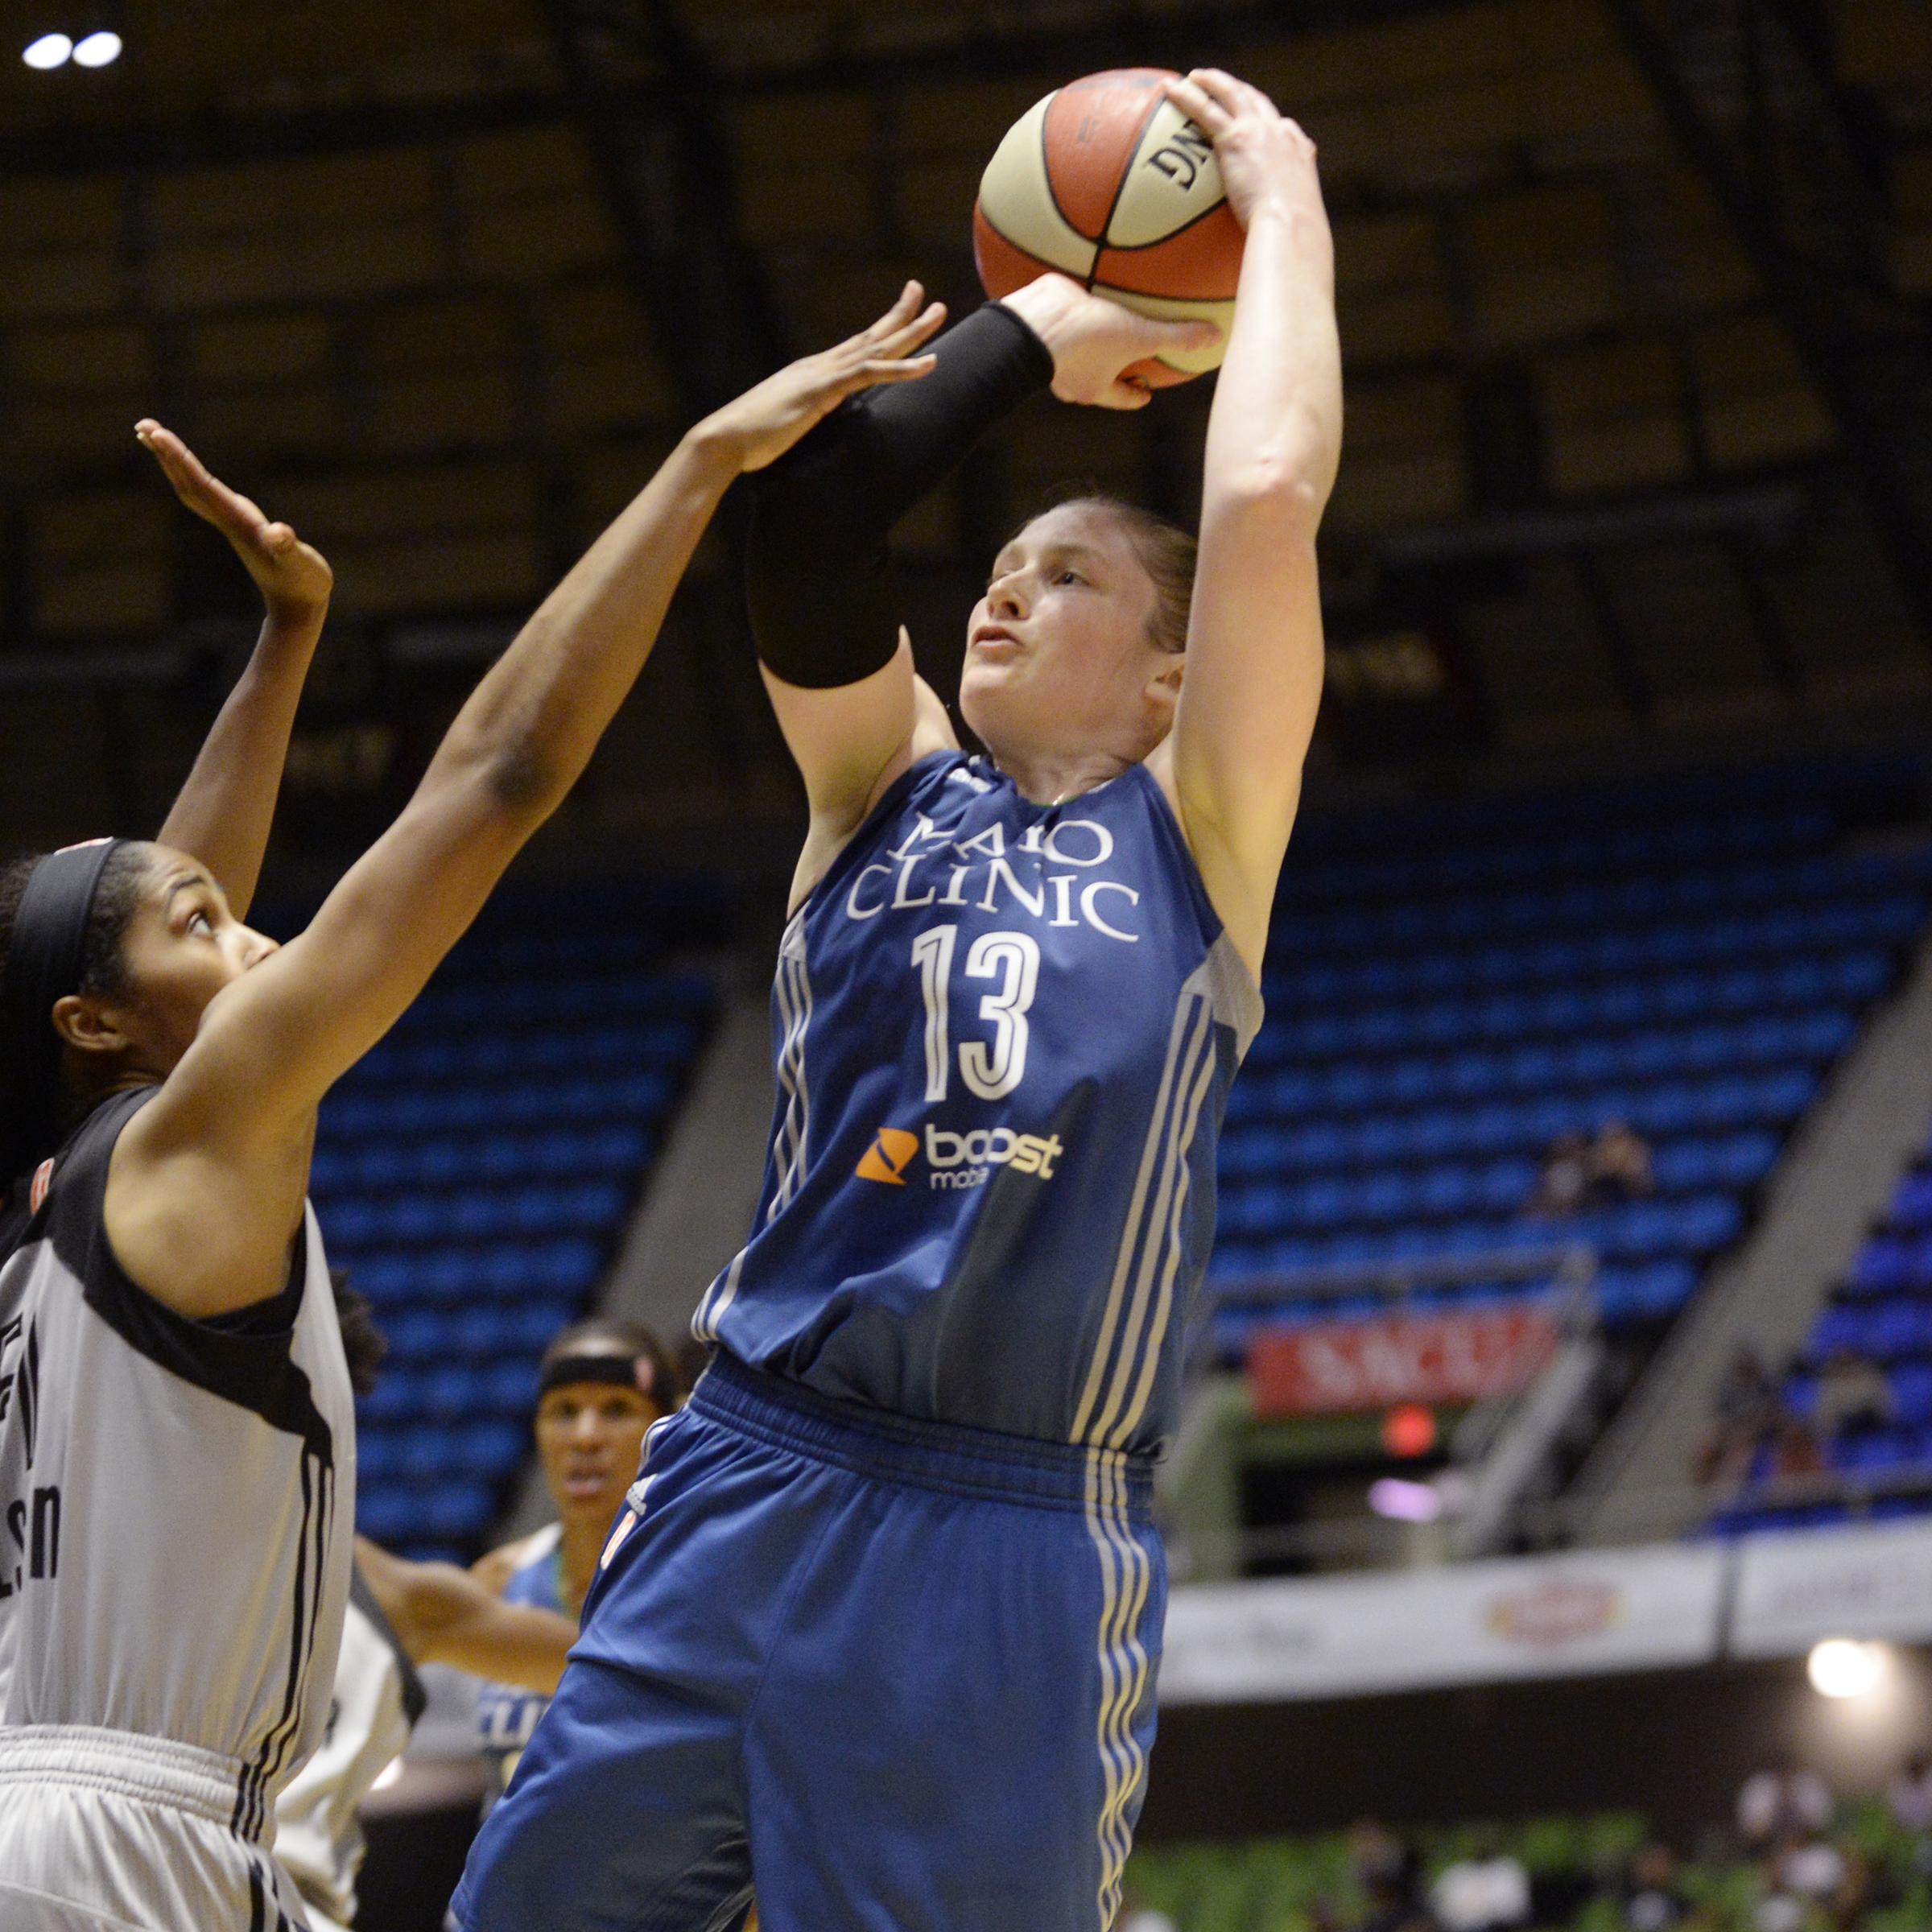 Lynx guard Lindsay Whalen falls away to score two of hersix points. Whalen's six points was her lowest total in a game this season.